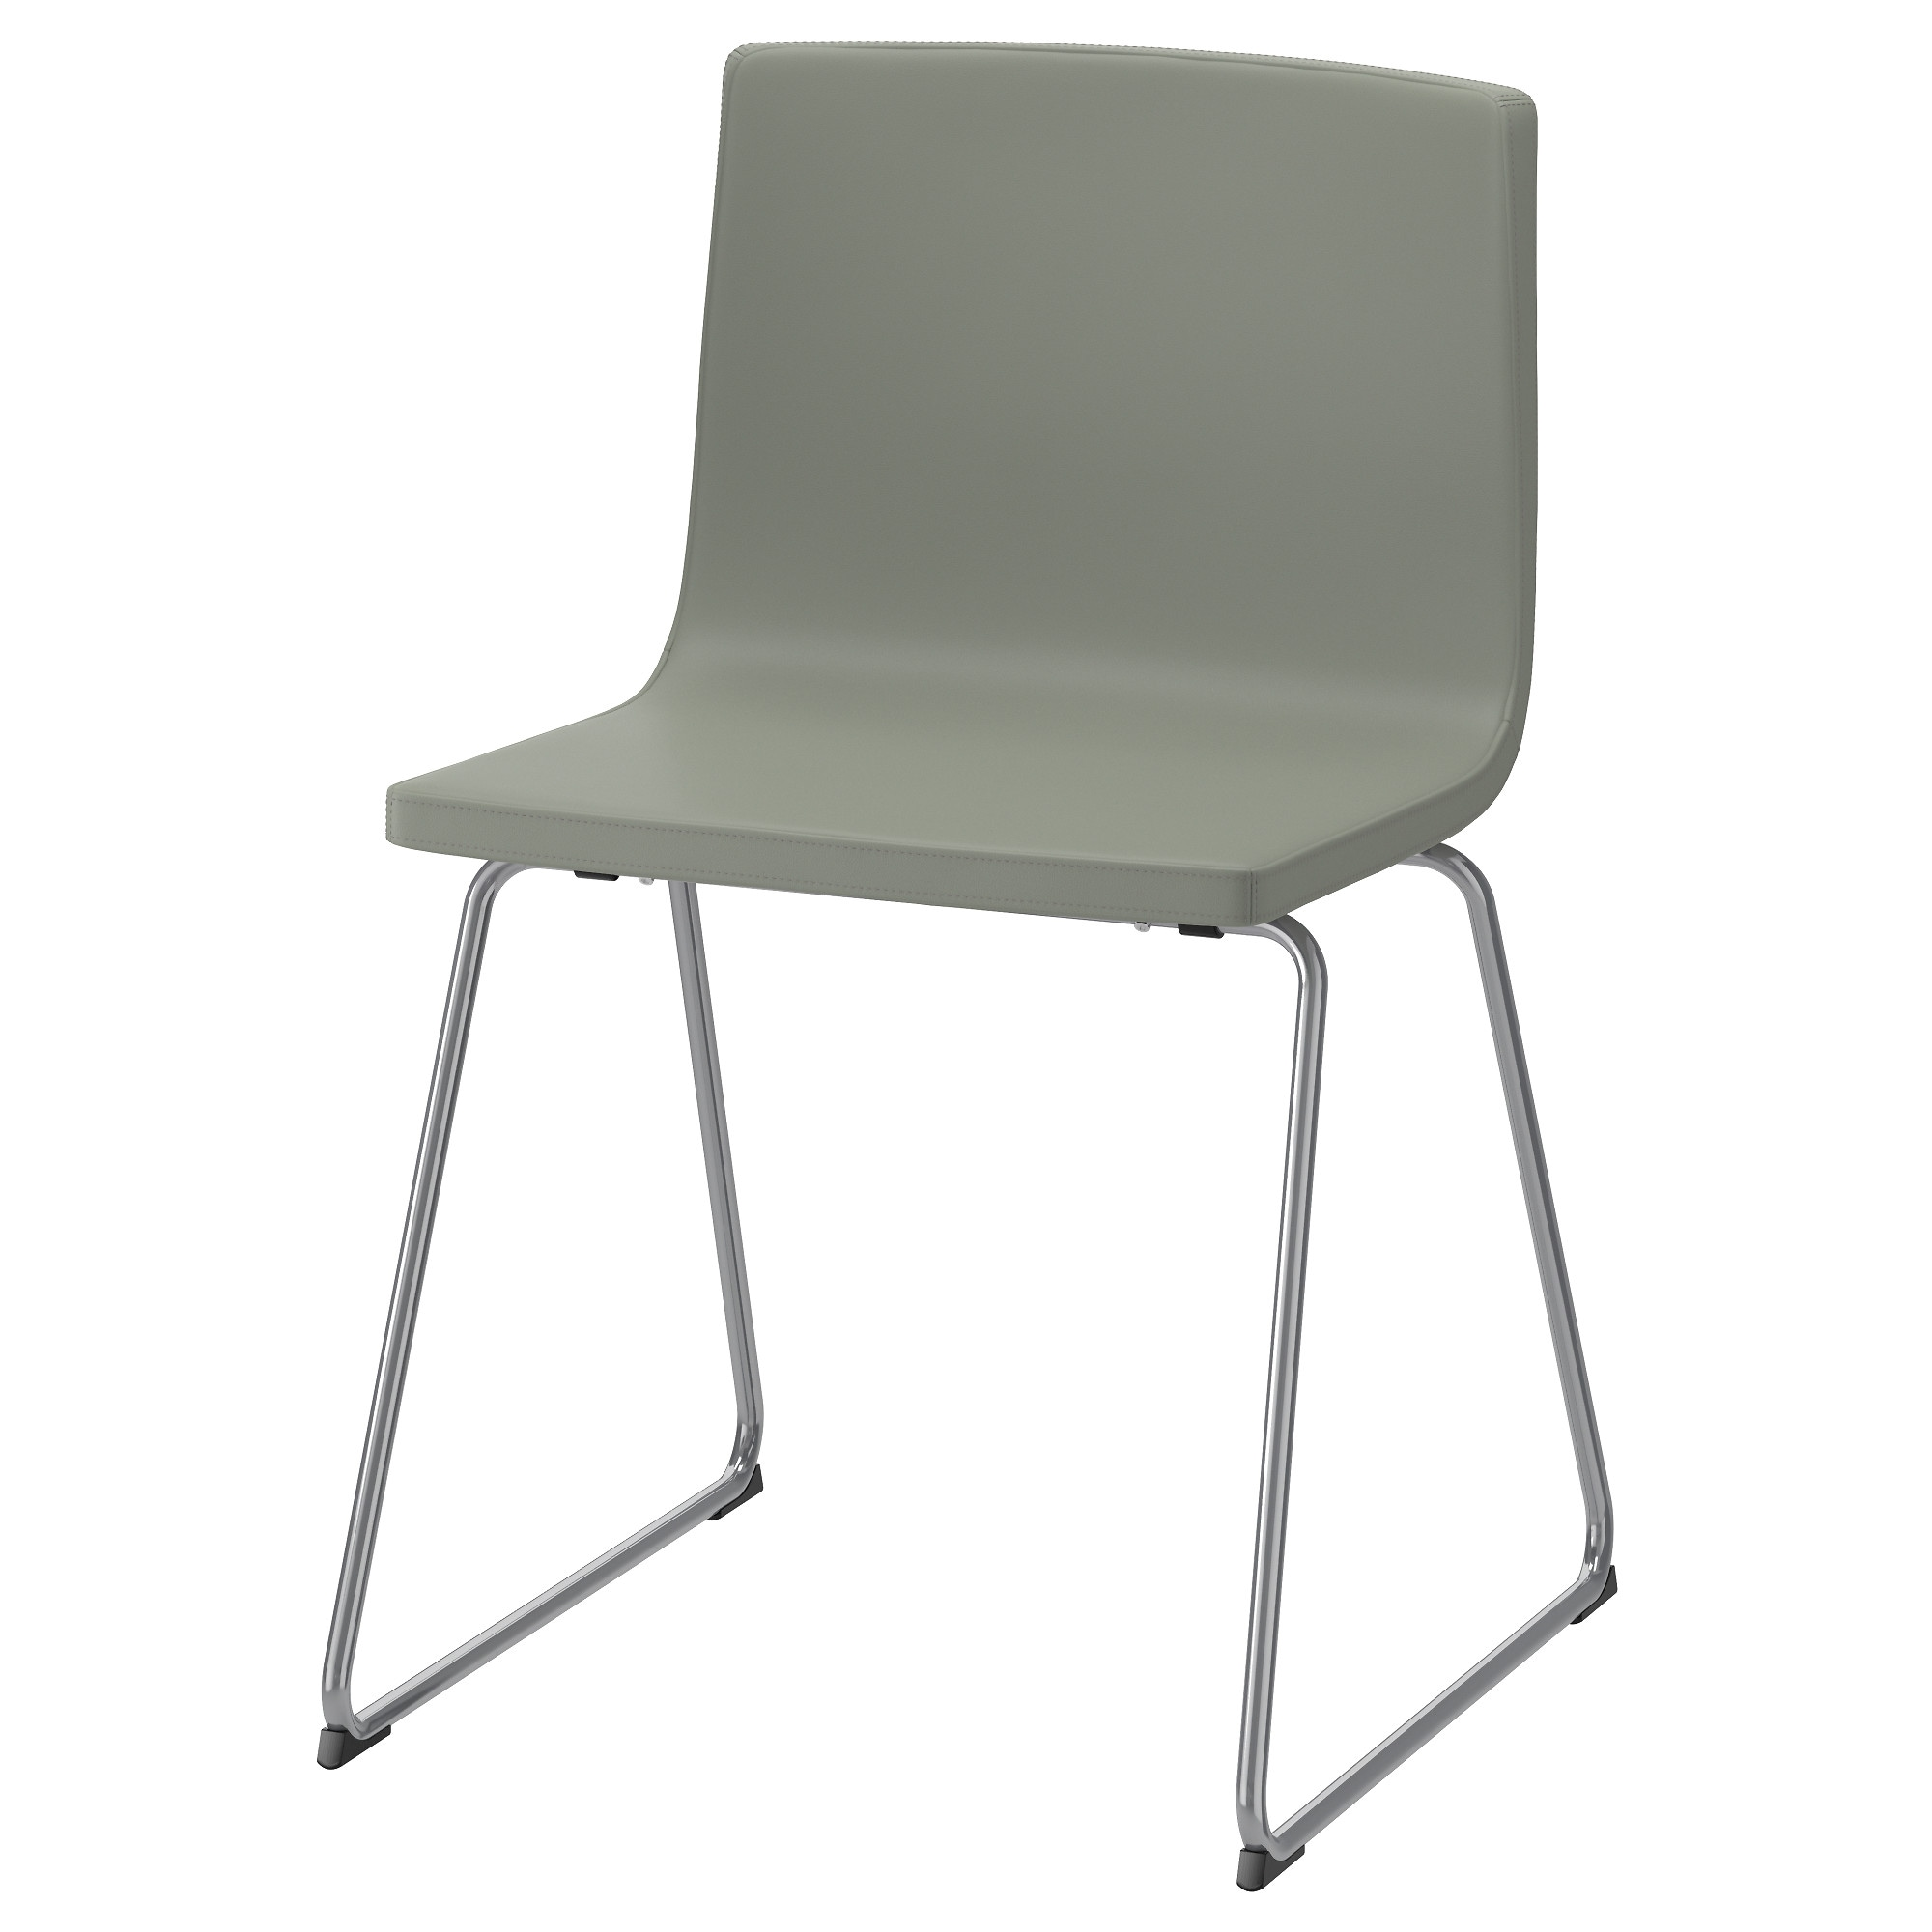 BERNHARD chair  chrome plated  Mjuk green Tested for  243 lb Width  19Dining chairs   Dining chairs   Upholstered chairs   IKEA. High Back Dining Chairs Ikea. Home Design Ideas